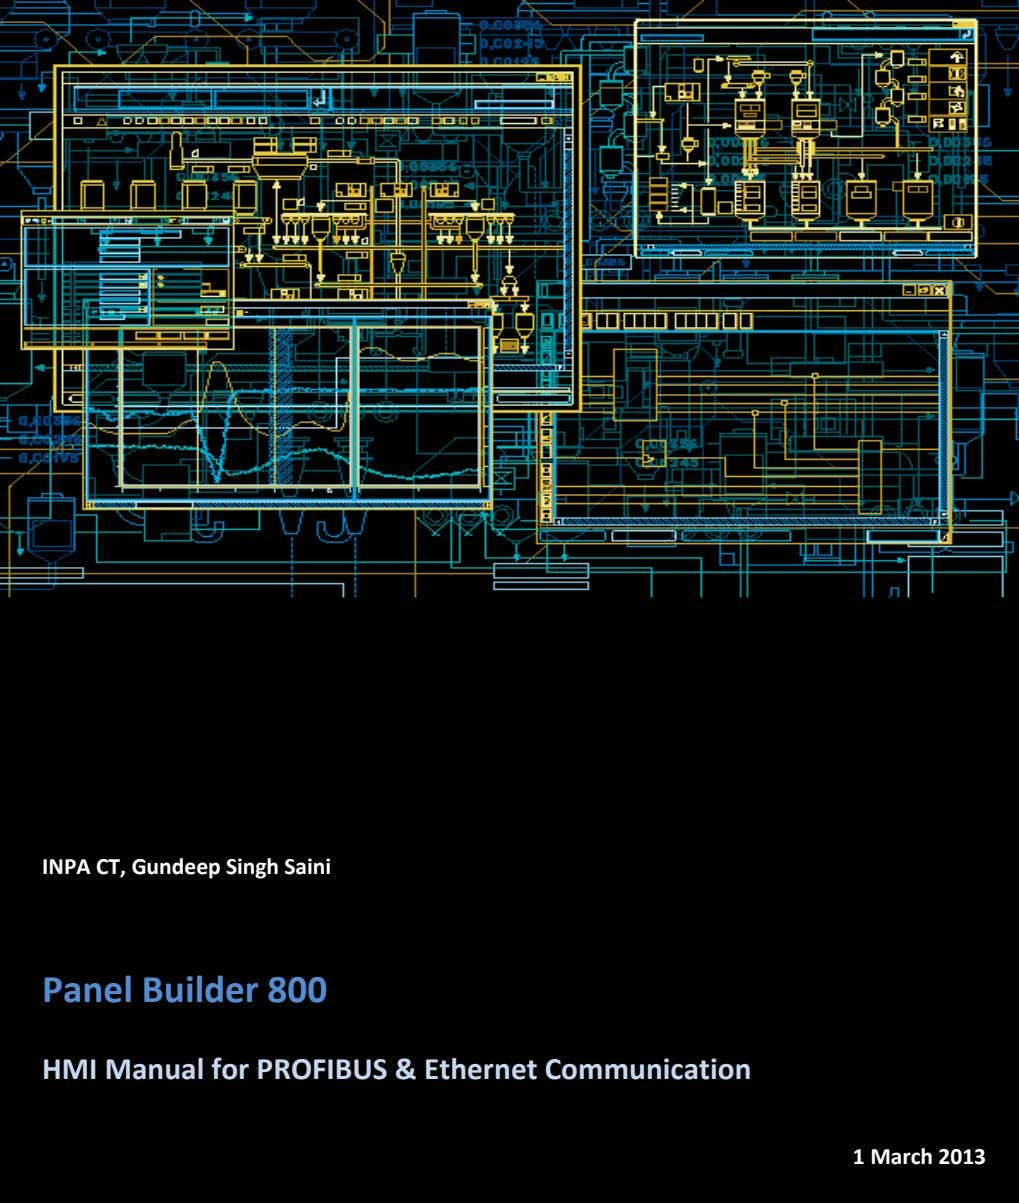 INPA CT, Gundeep Singh Saini Panel Builder 800 HMI Manual for PROFIBUS & Ethernet Communication